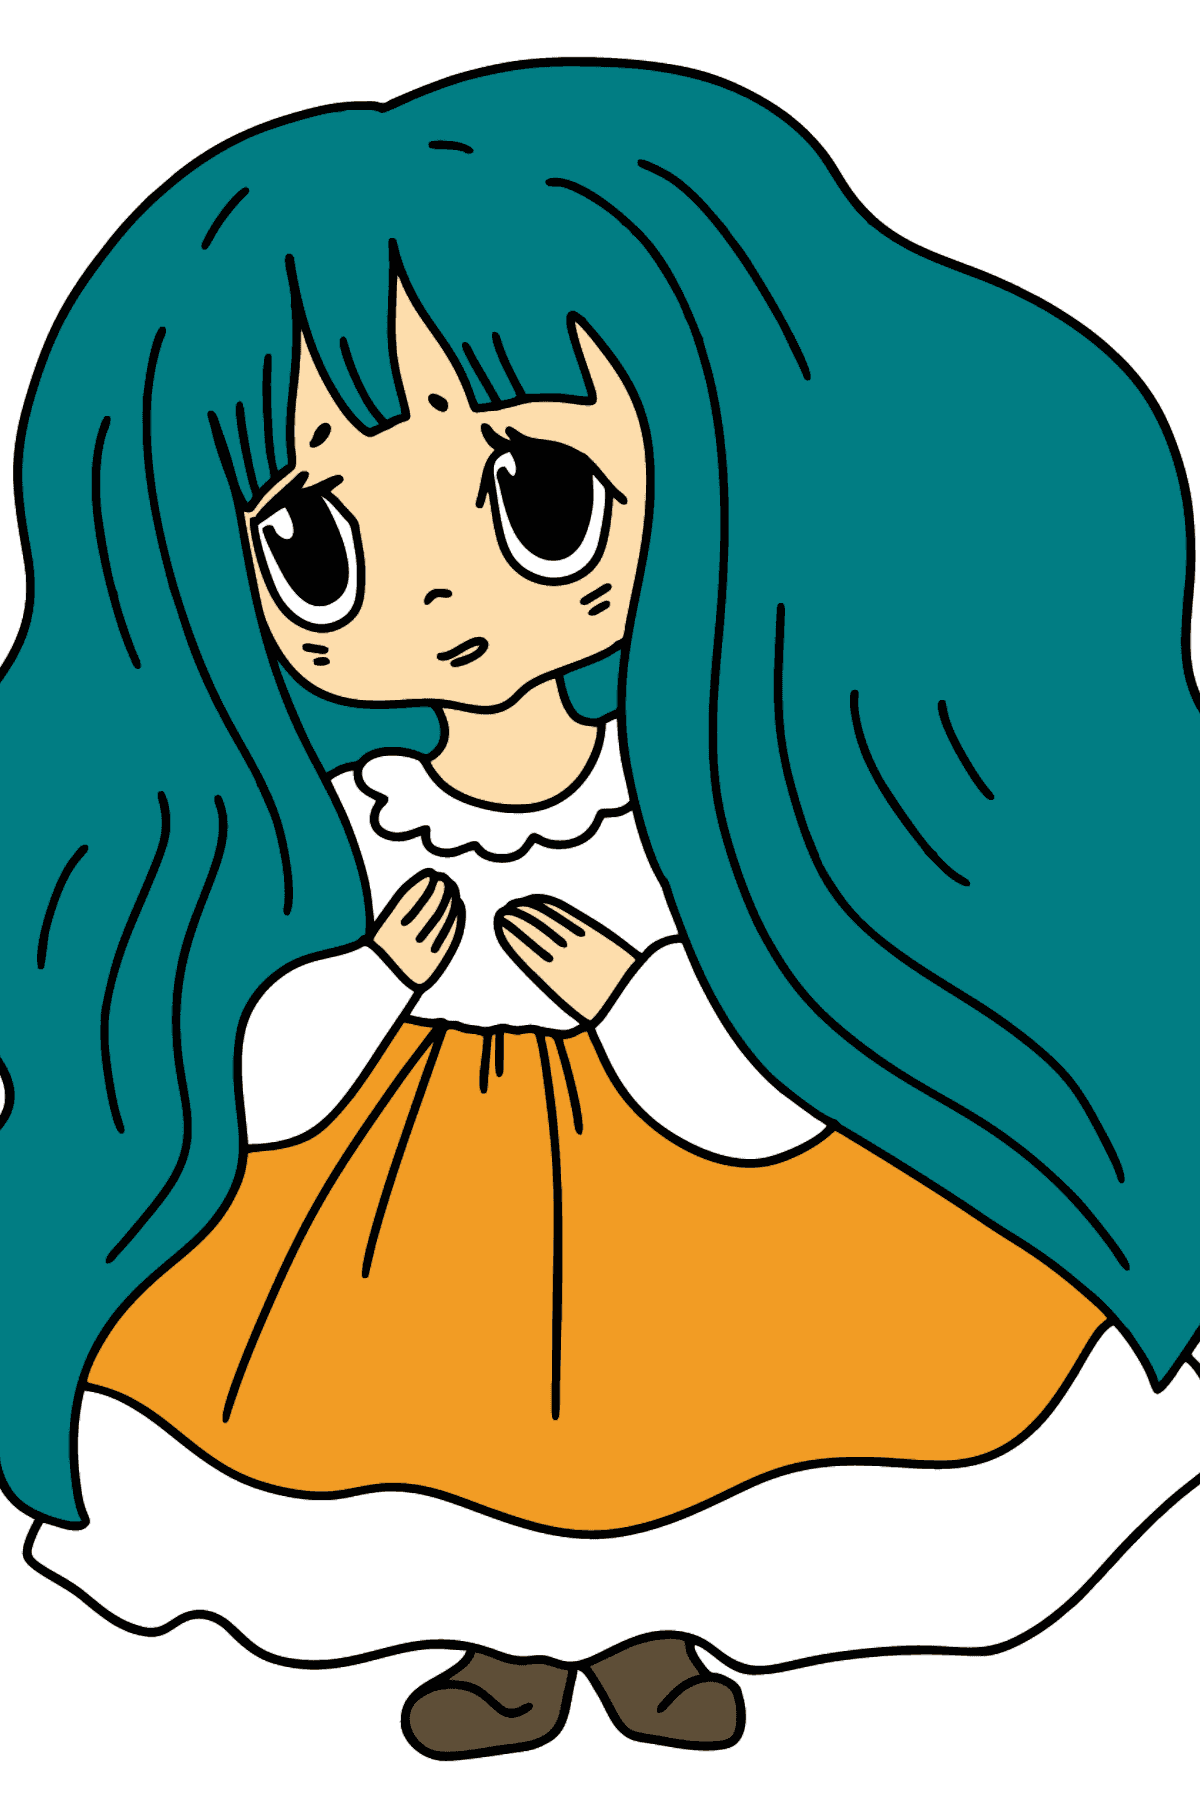 Anime Sad Girl Coloring Pages - Coloring Pages for Kids